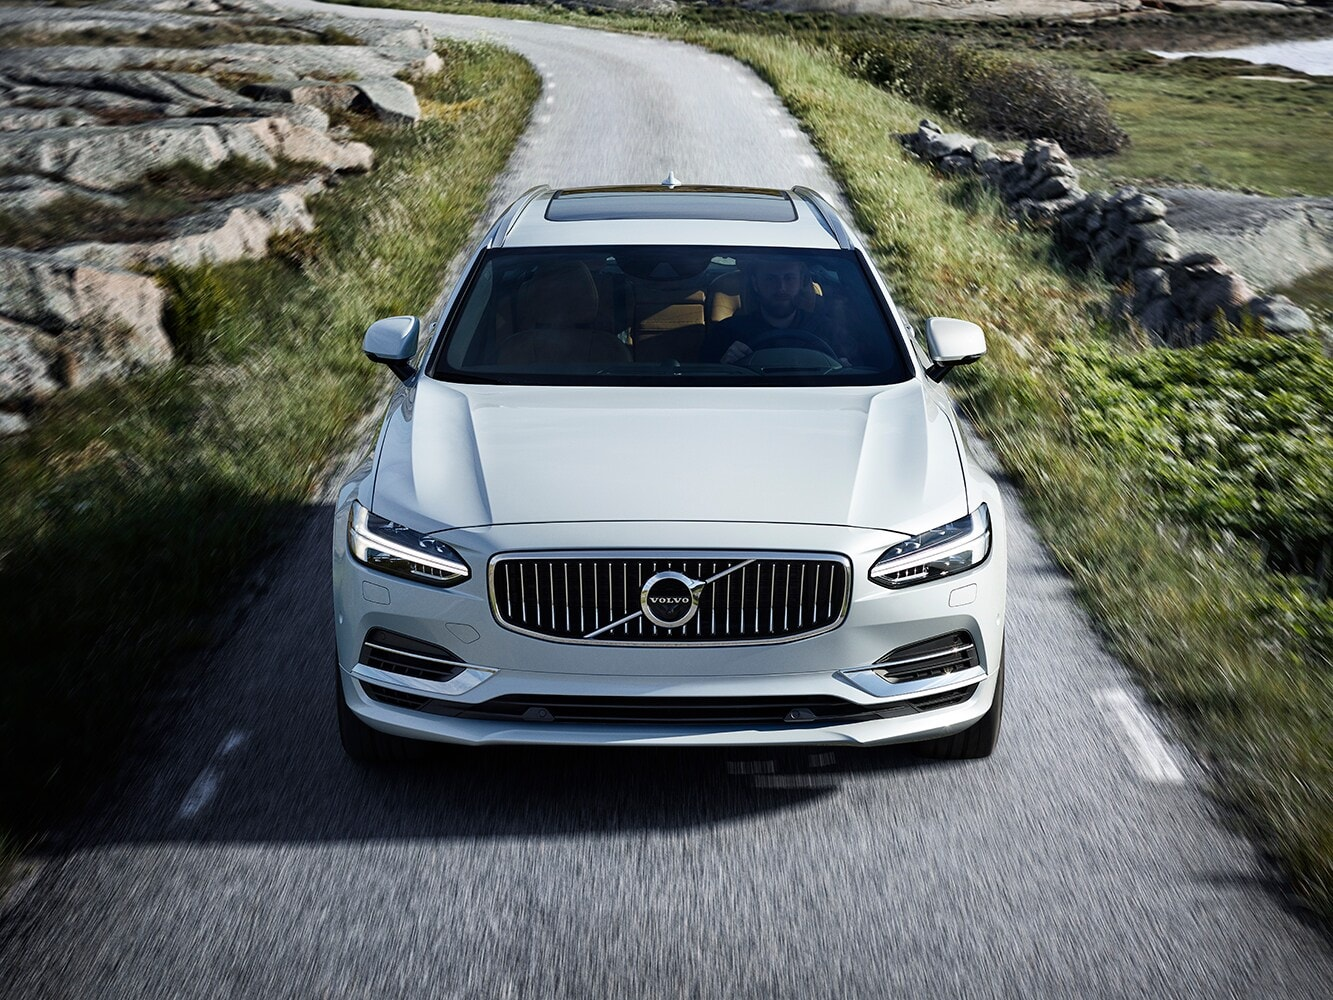 Front view of a Volvo V90 driving along a country road